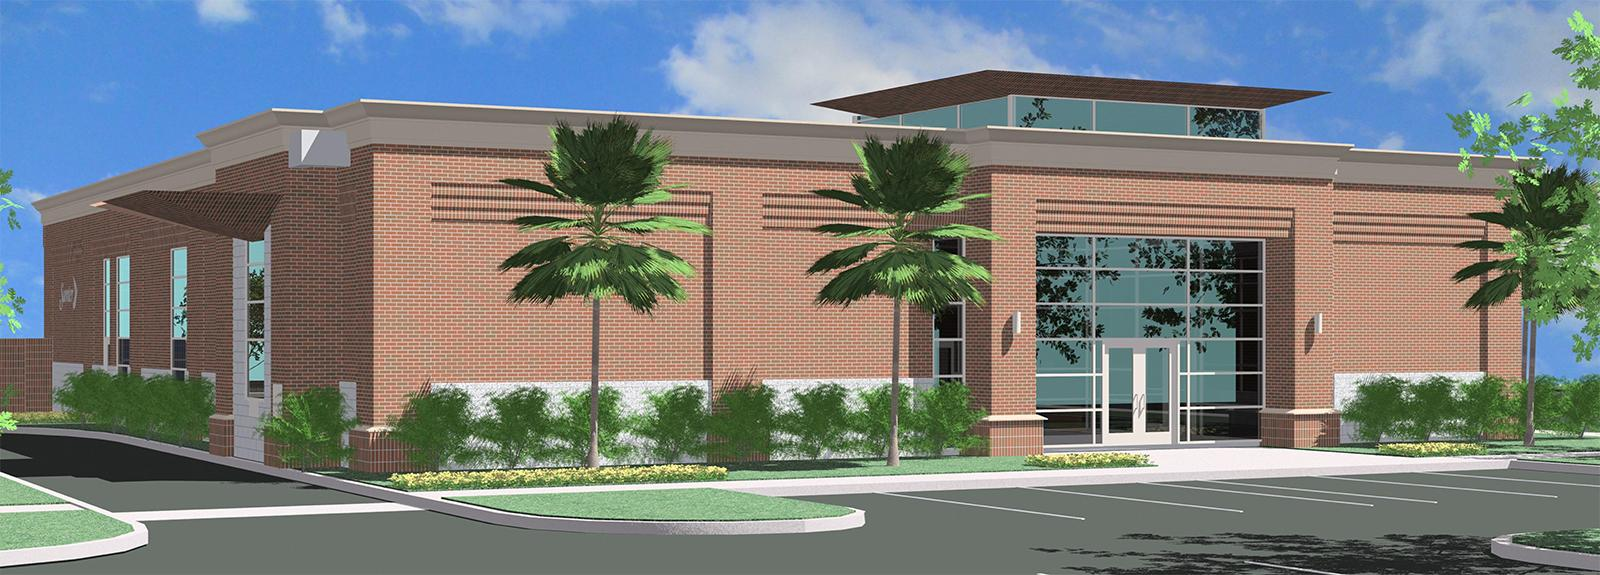 Rendering of City Utility Billing Office